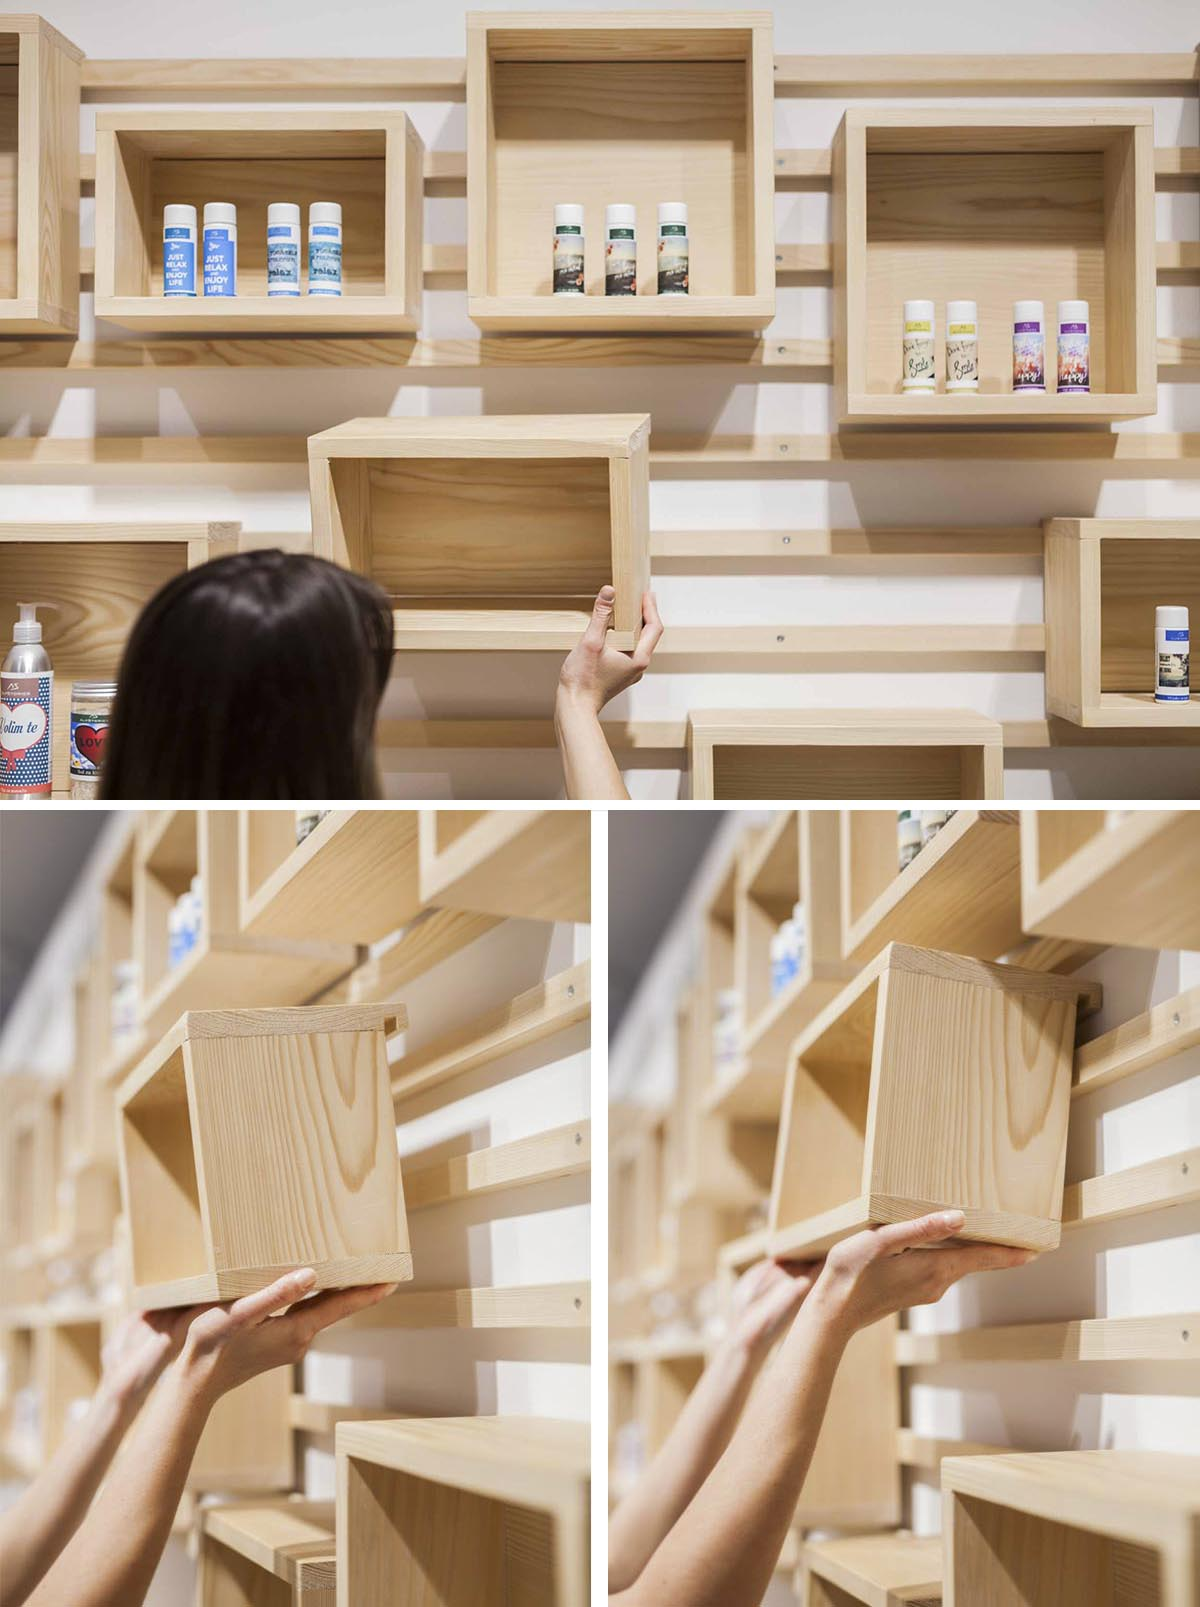 A wall-mounted cleat shelving system with wood boxes.